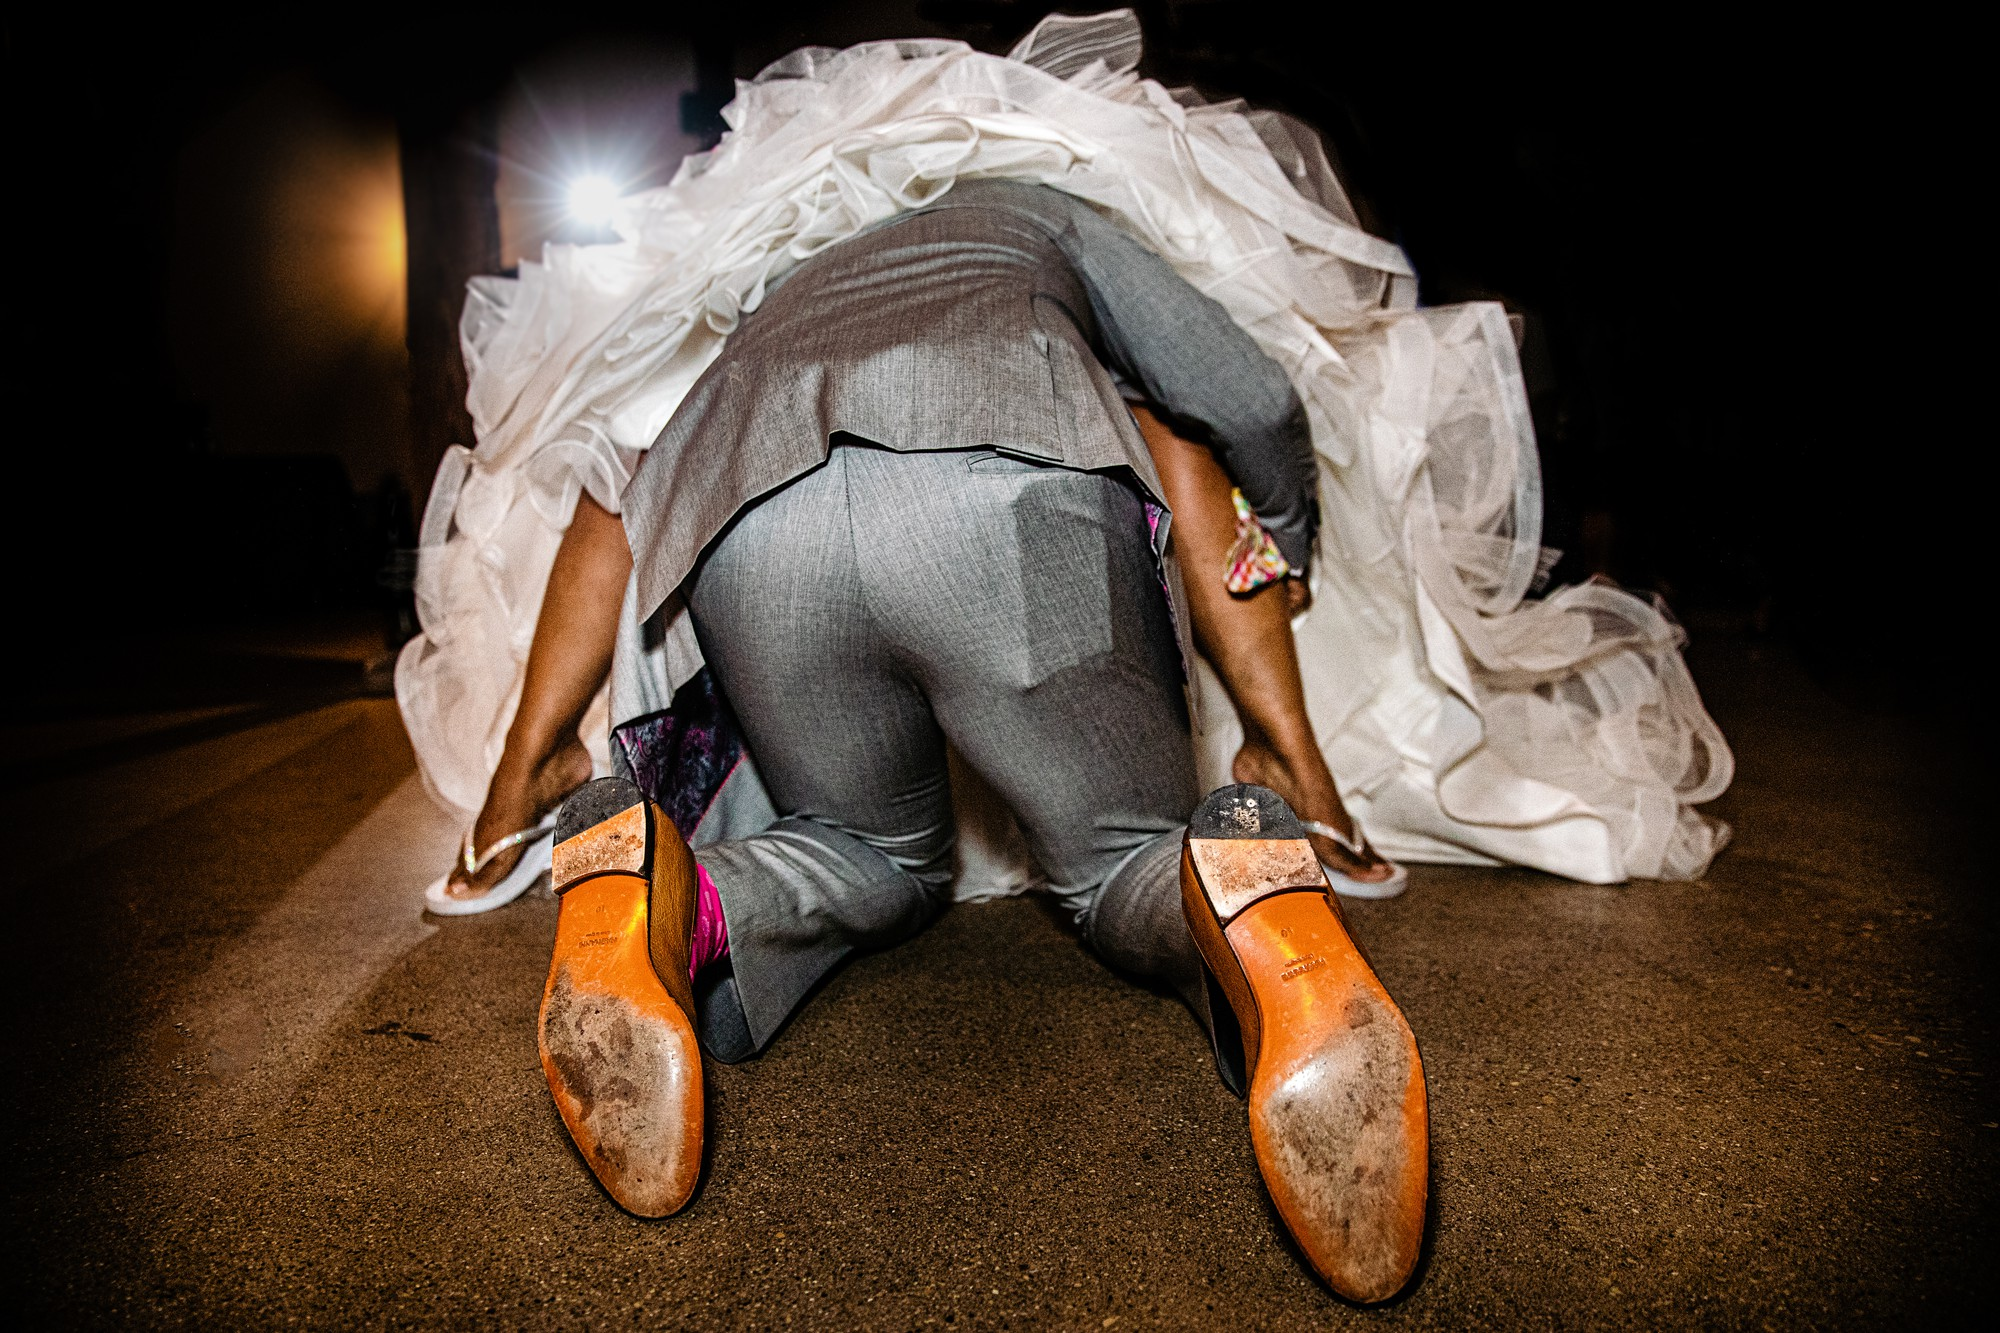 hilarious-wedding-photo-of-groom-diving-for-garter-by-yves-schepers-belgium-wedding-photographer